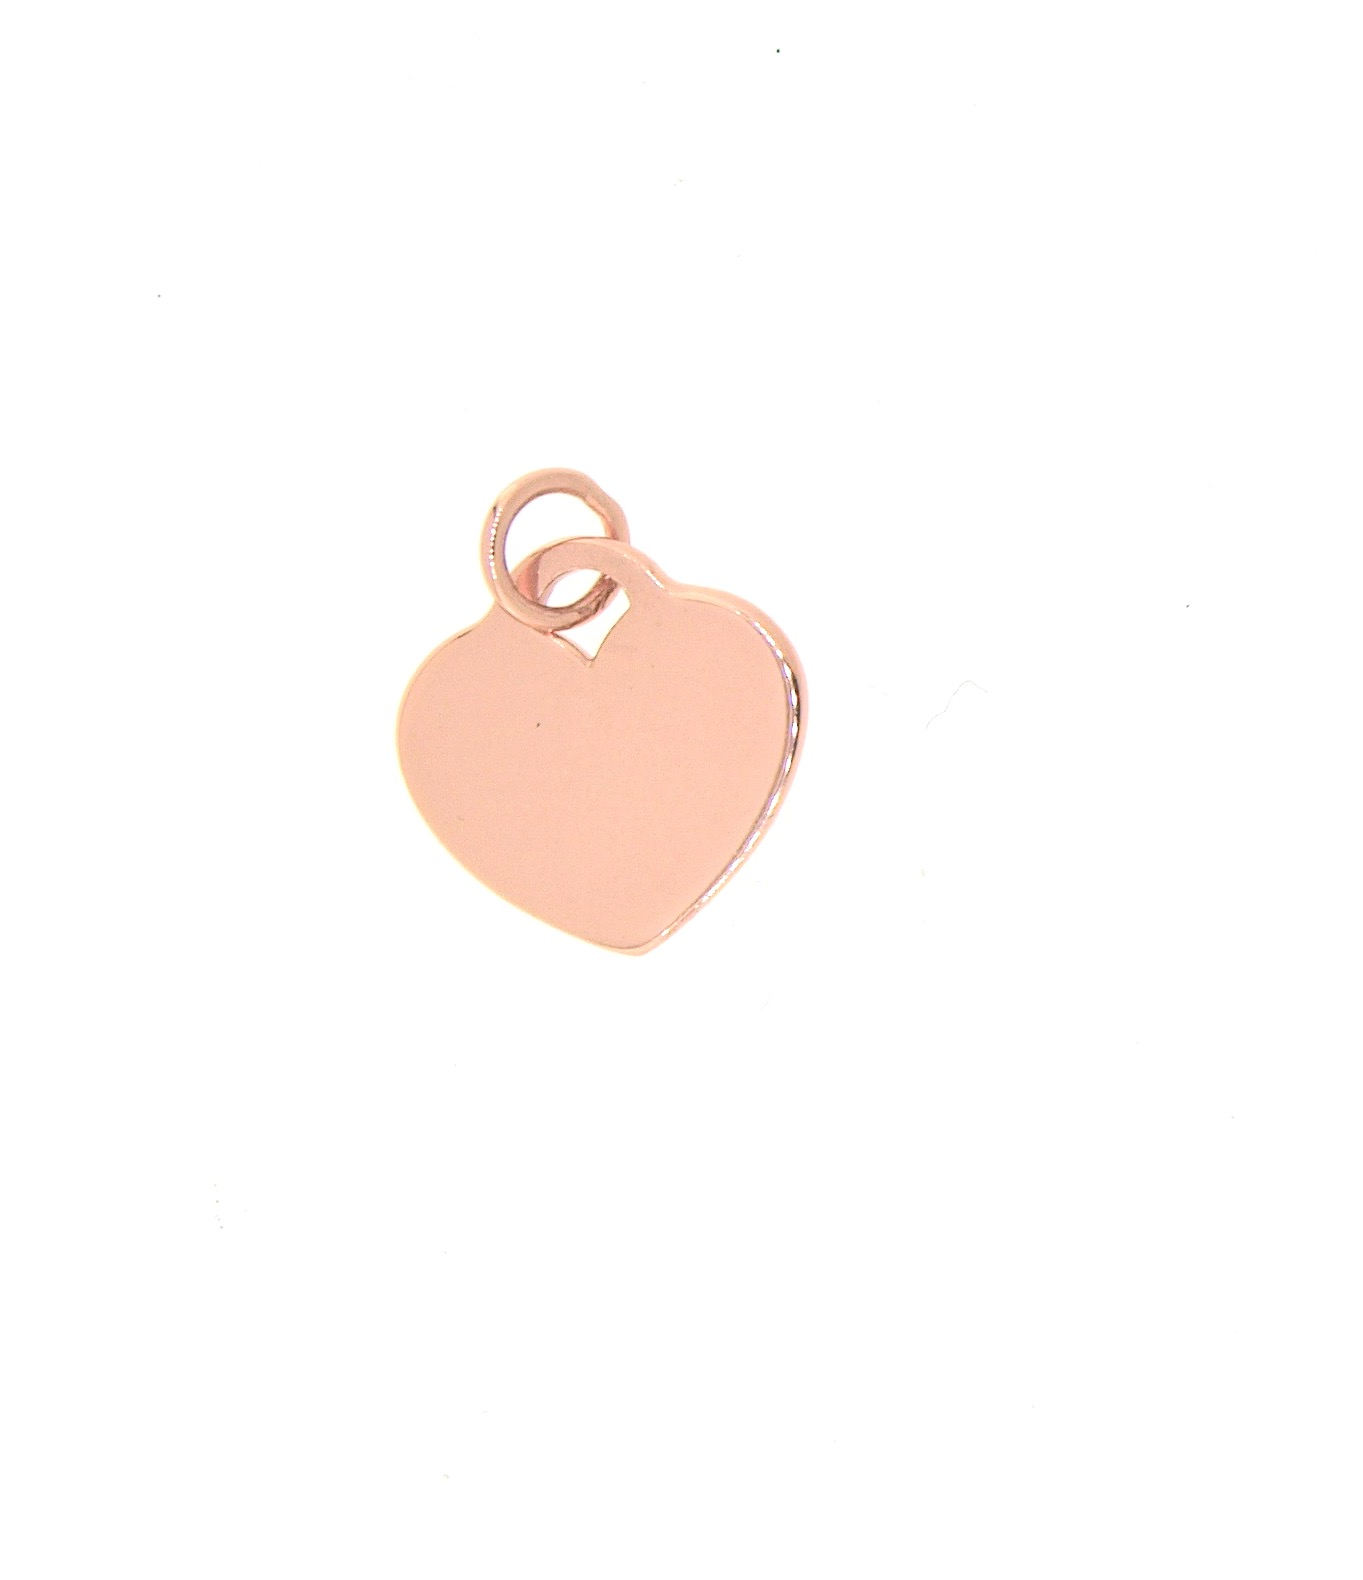 pendant from flat dr image heart layton heath jewellery plain necklace kit sarah